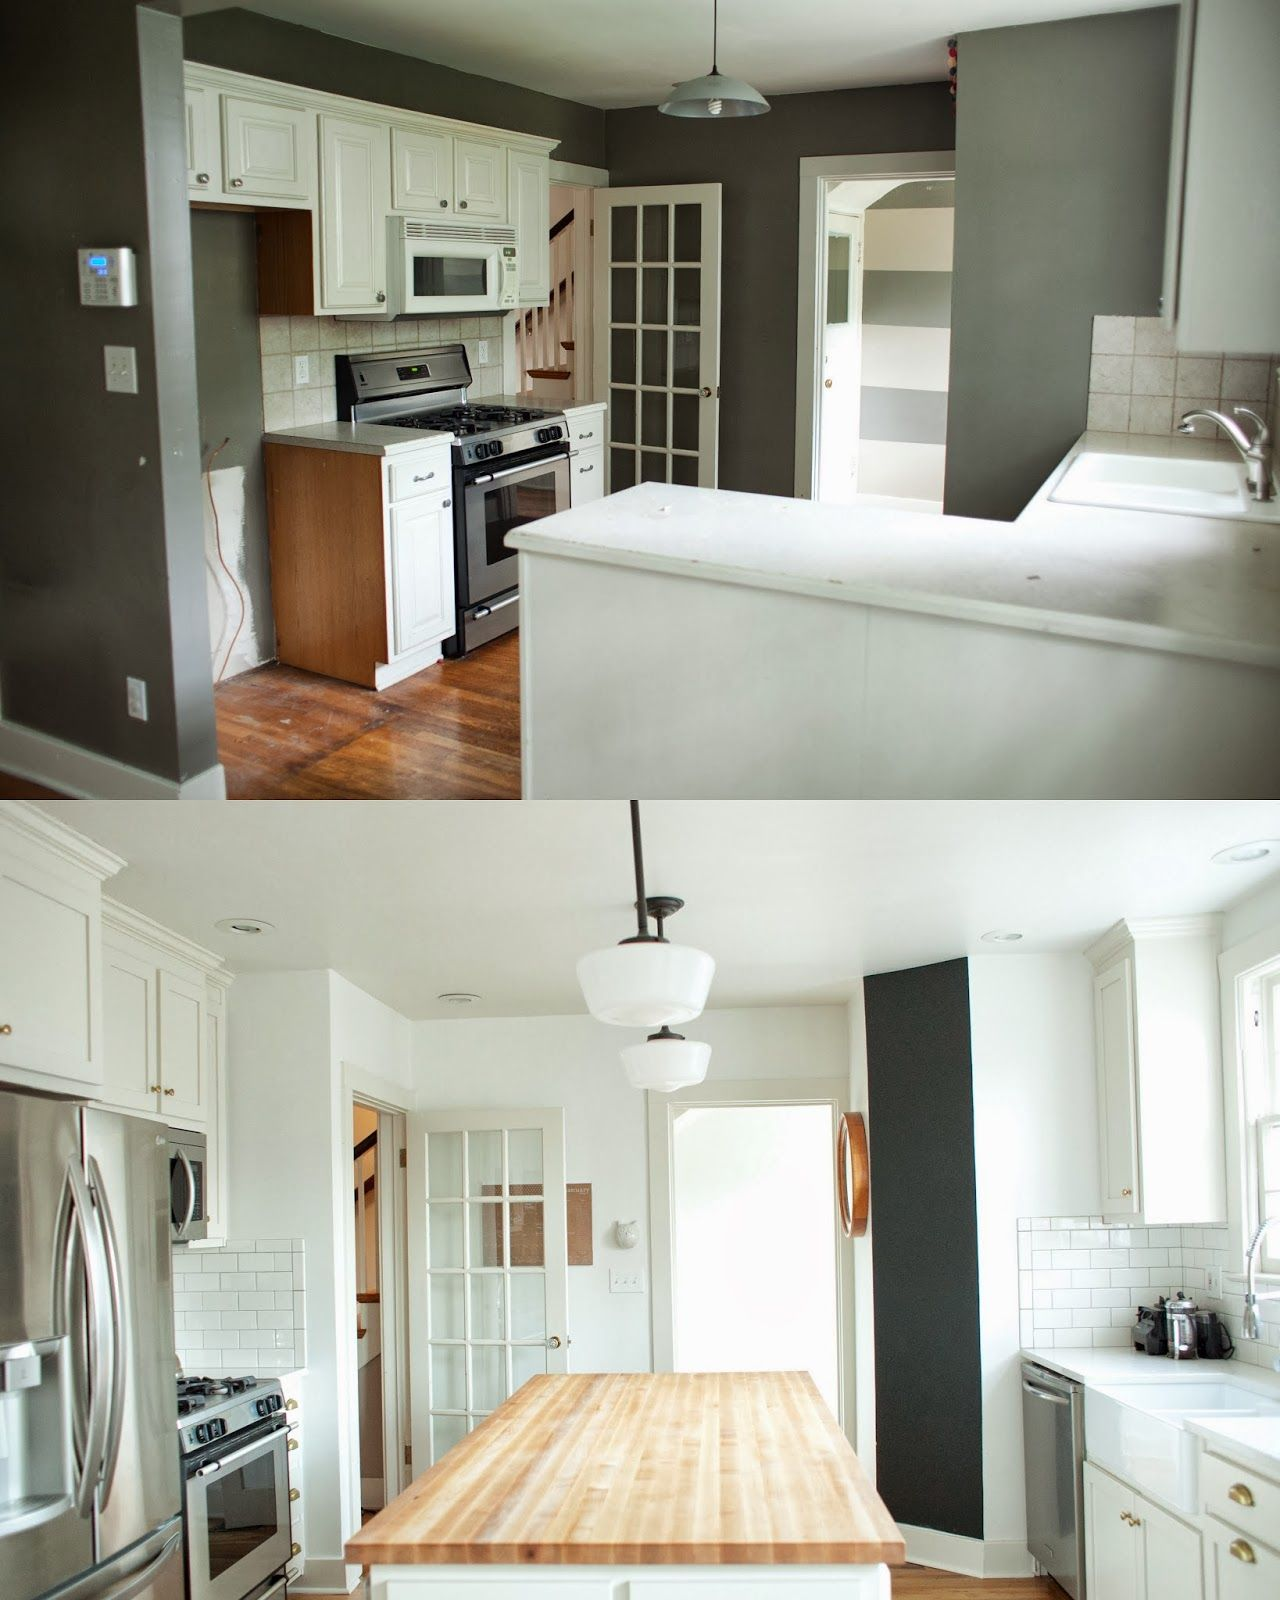 from the nato\'s: kitchen renovation before and after | Kitchen ...